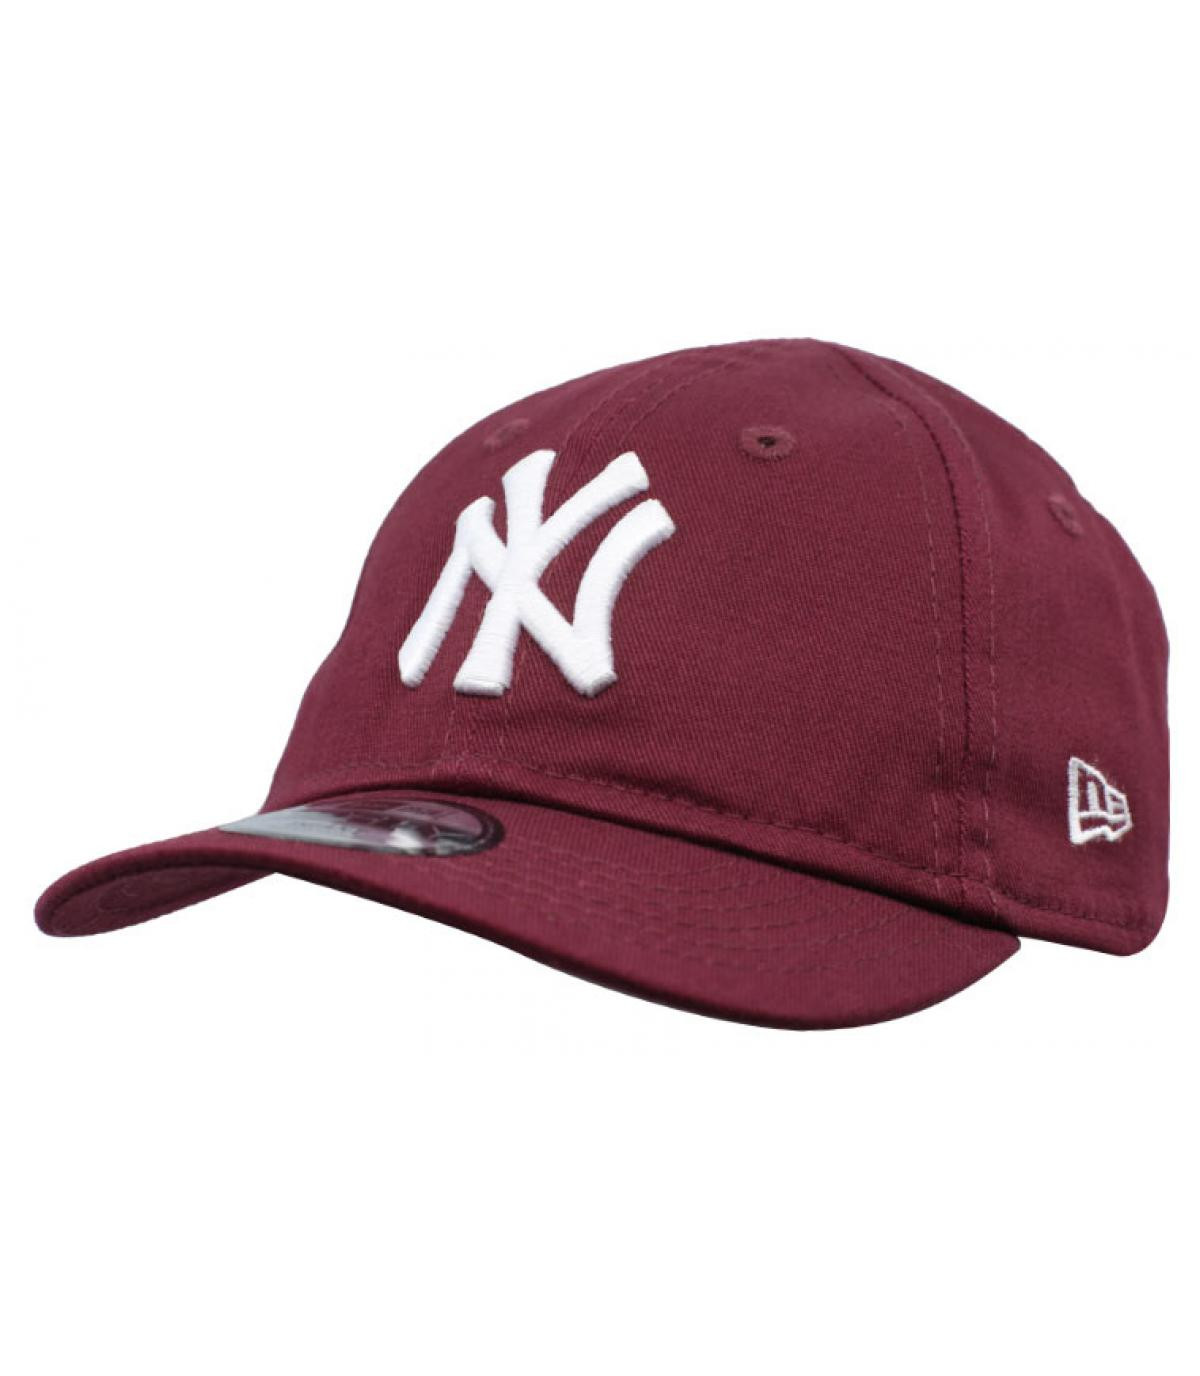 Details Baby League Ess NY 9Forty maroon - afbeeling 2